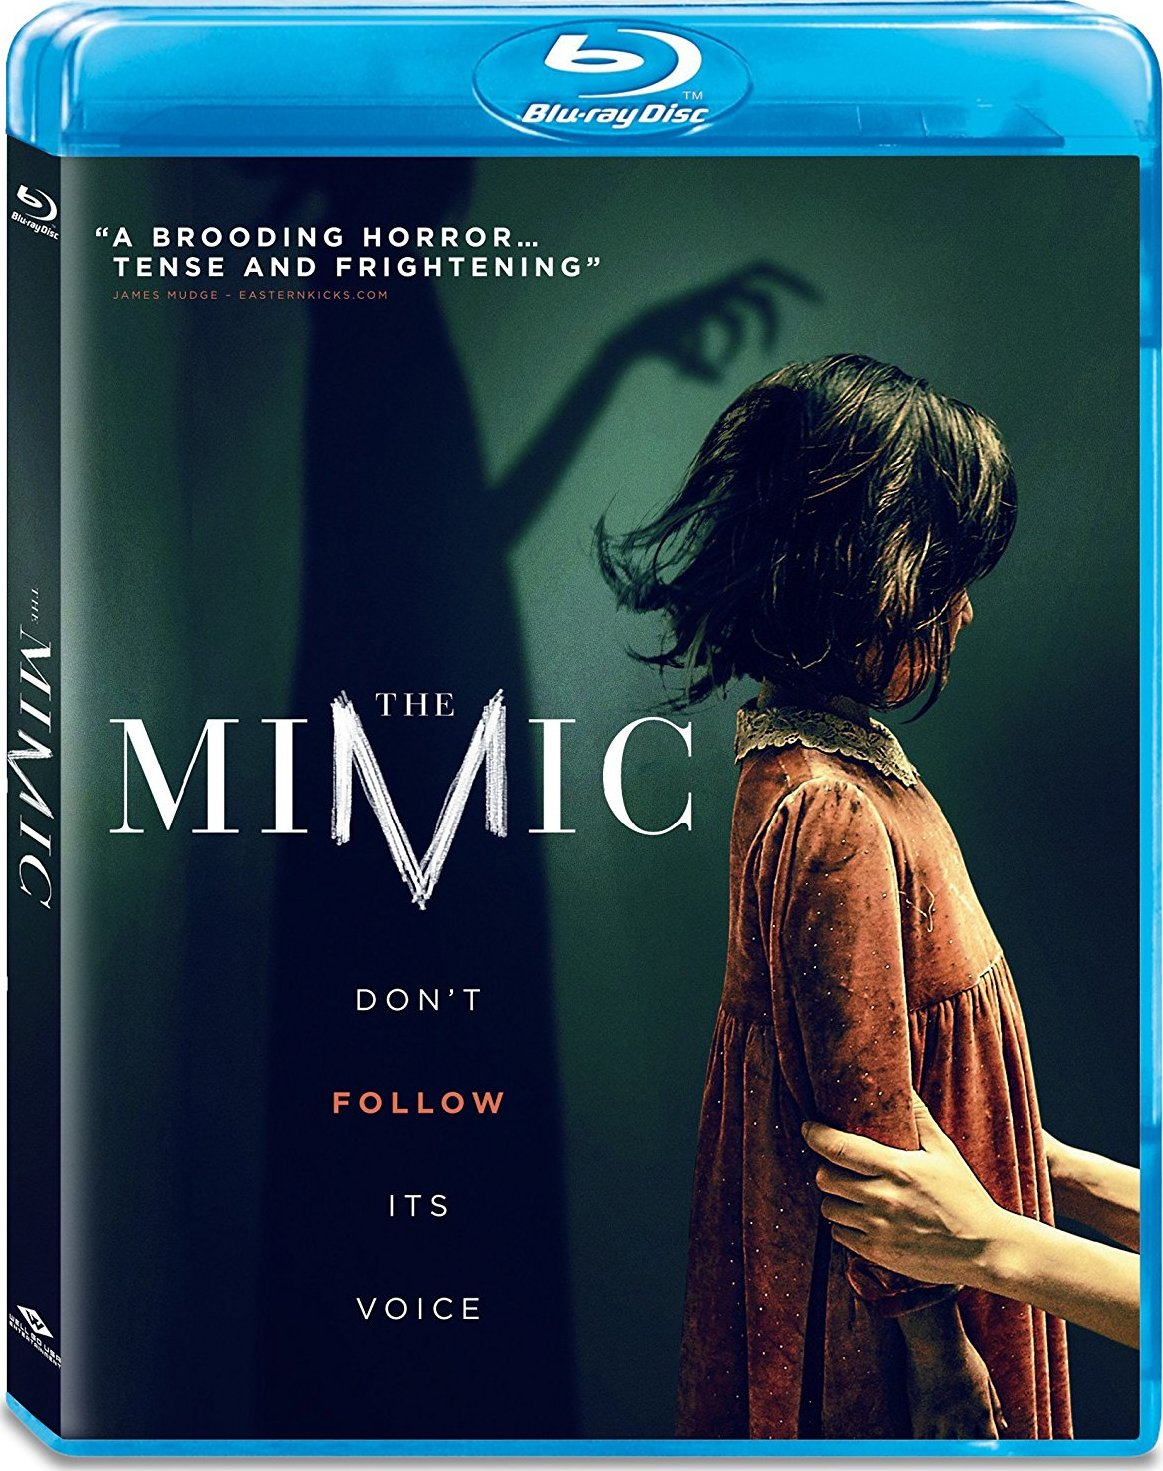 The Mimic (2017) Blu-ray